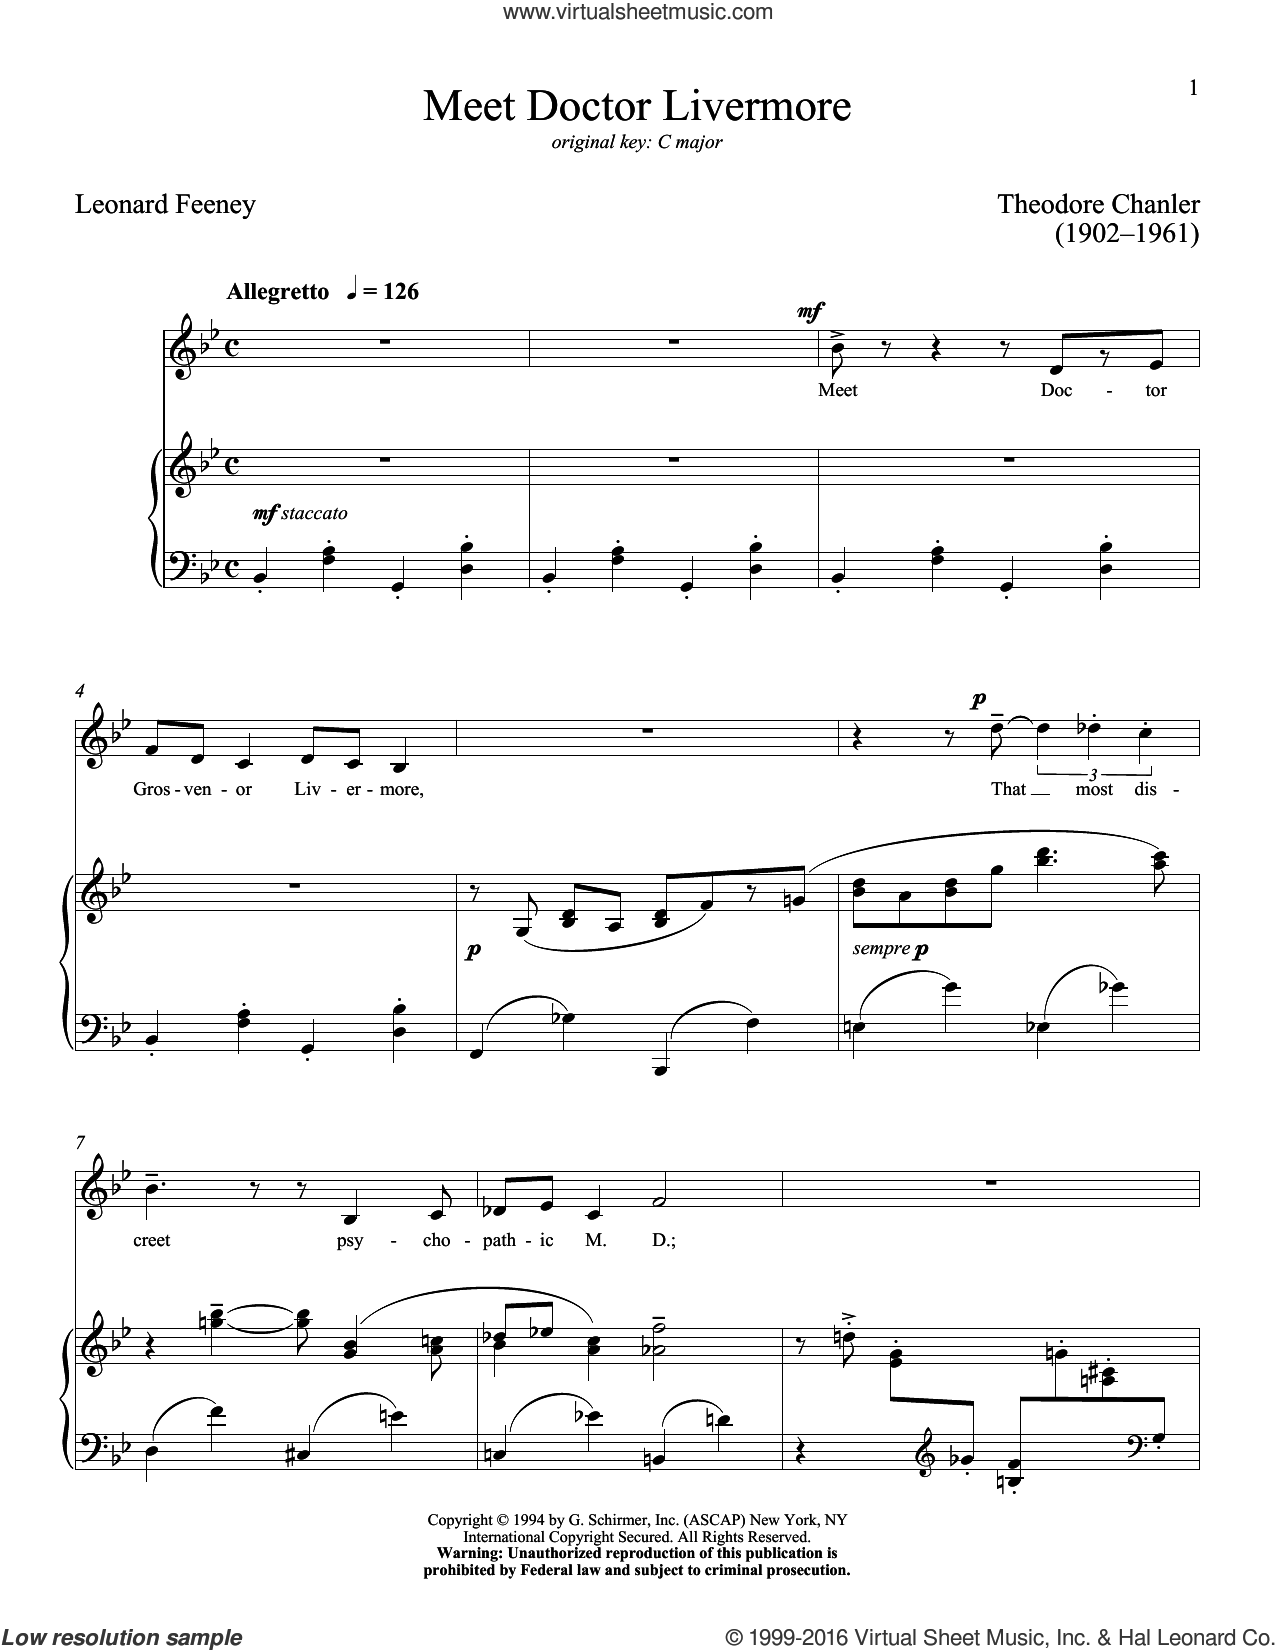 Meet Doctor Livermore sheet music for voice and piano (Low ) by Leonard Feeney, Richard Walters and Theodore Chanler, classical score, intermediate. Score Image Preview.